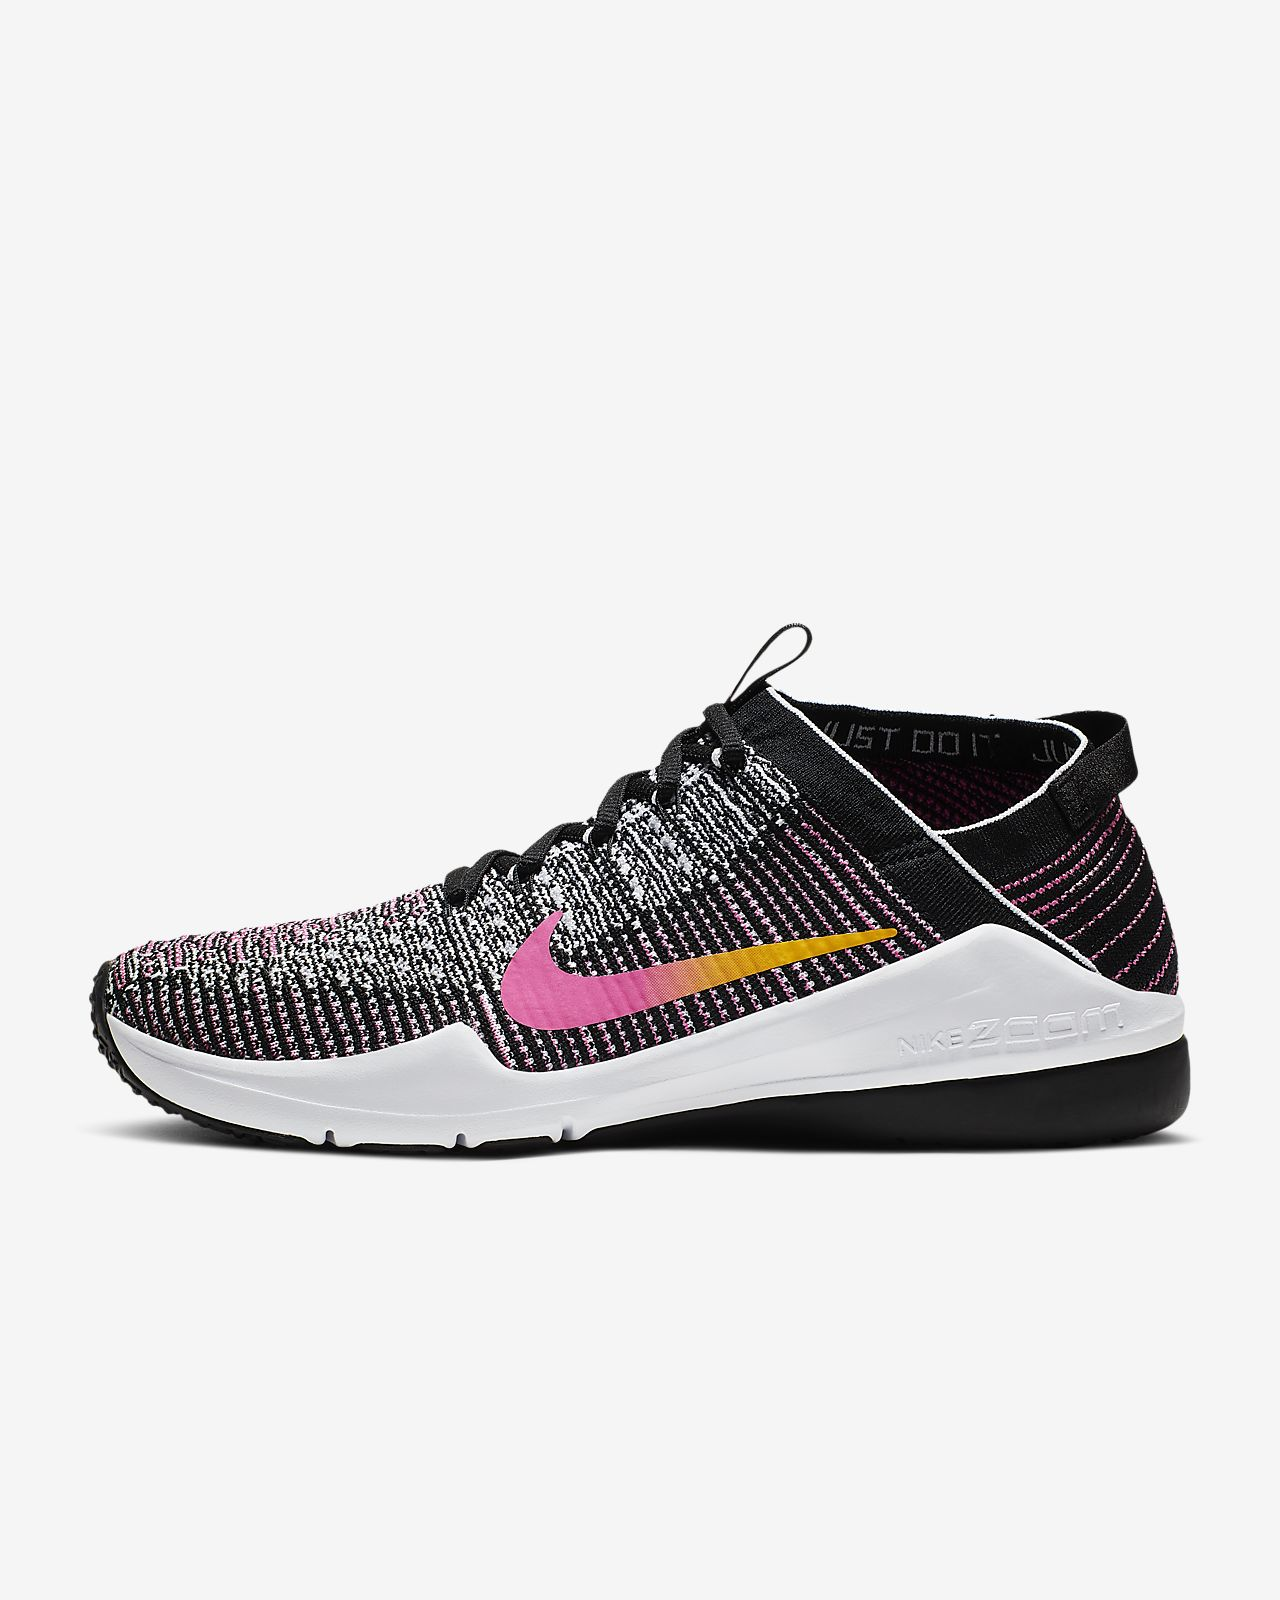 huge selection of 58a90 a6fb9 ... Chaussure de training, boxe et fitness Nike Air Zoom Fearless Flyknit 2 pour  Femme